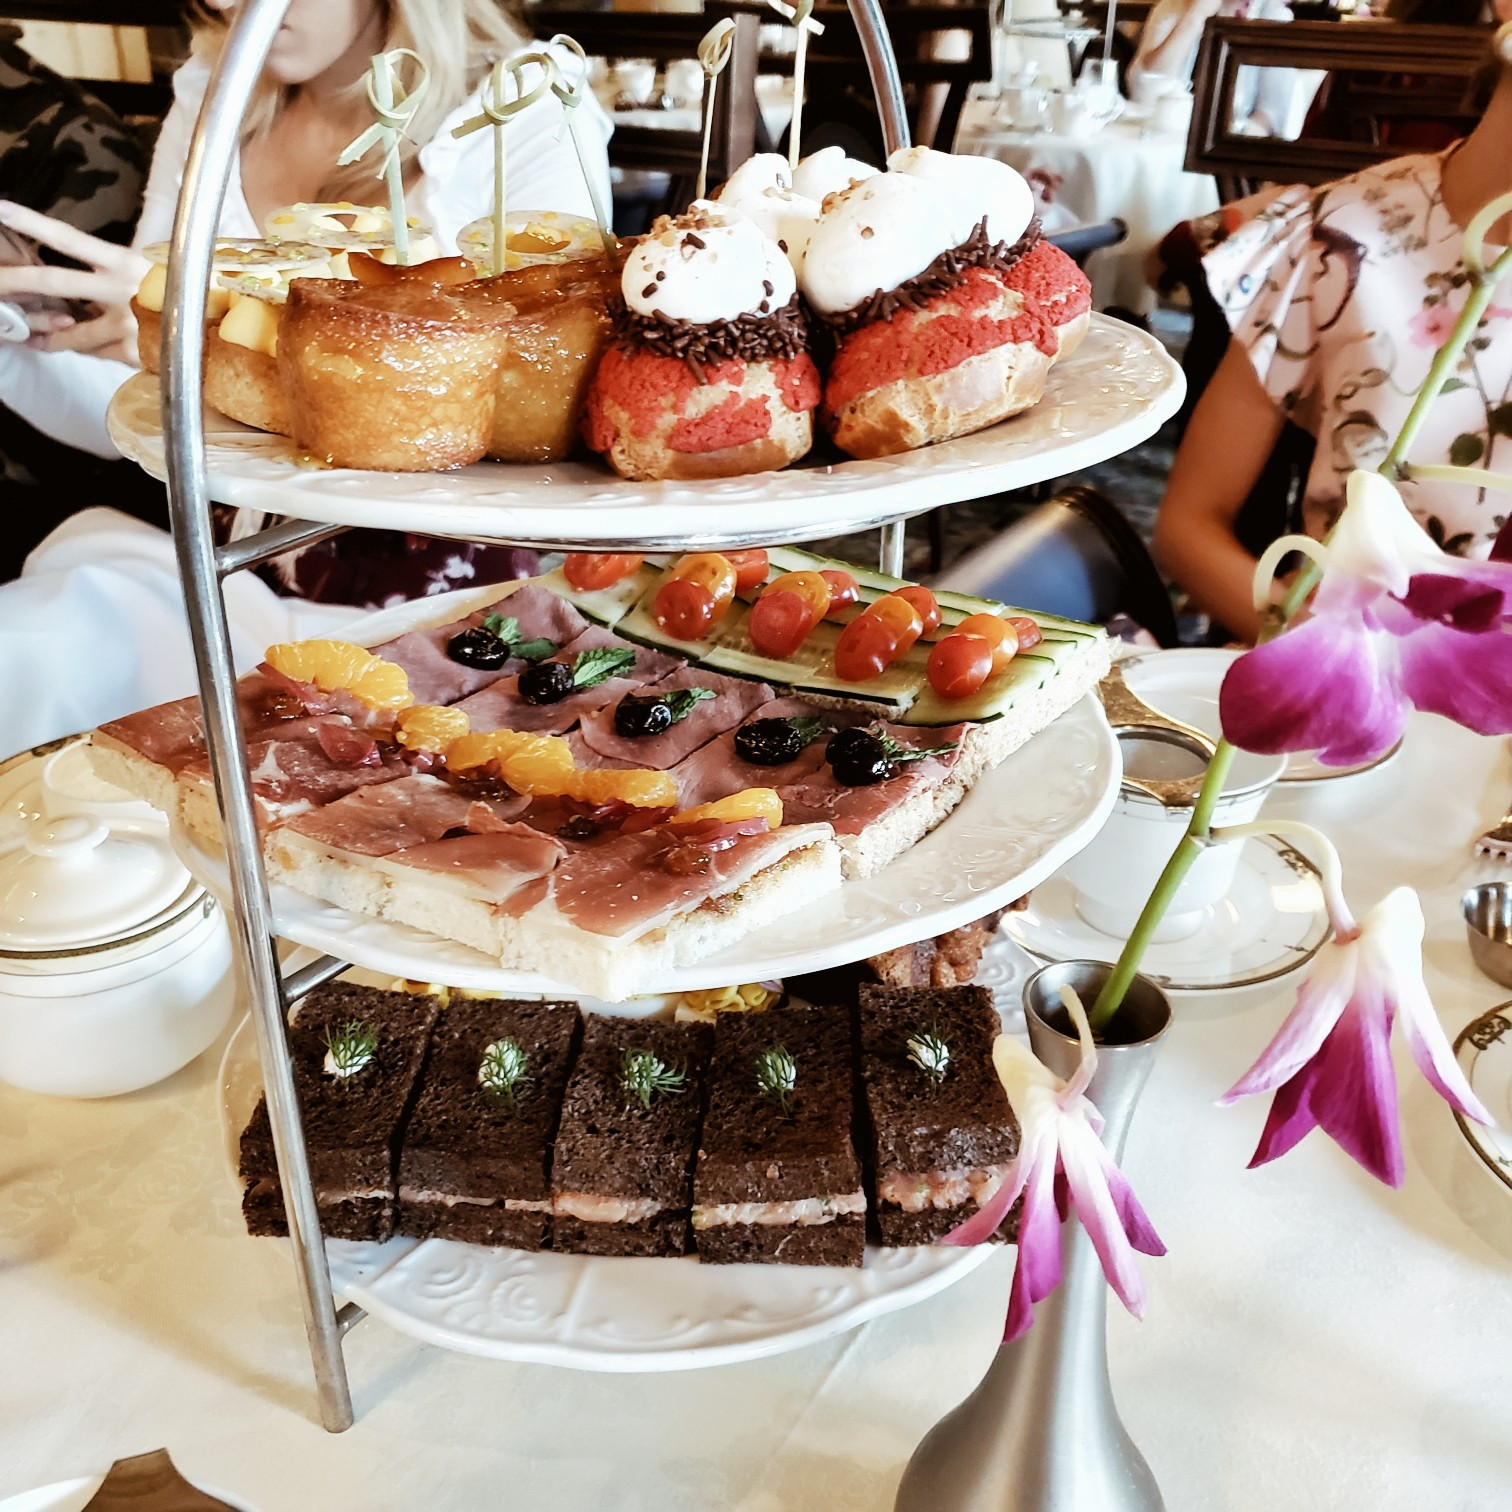 Miami high tea review by travel blogger Afroza Khan